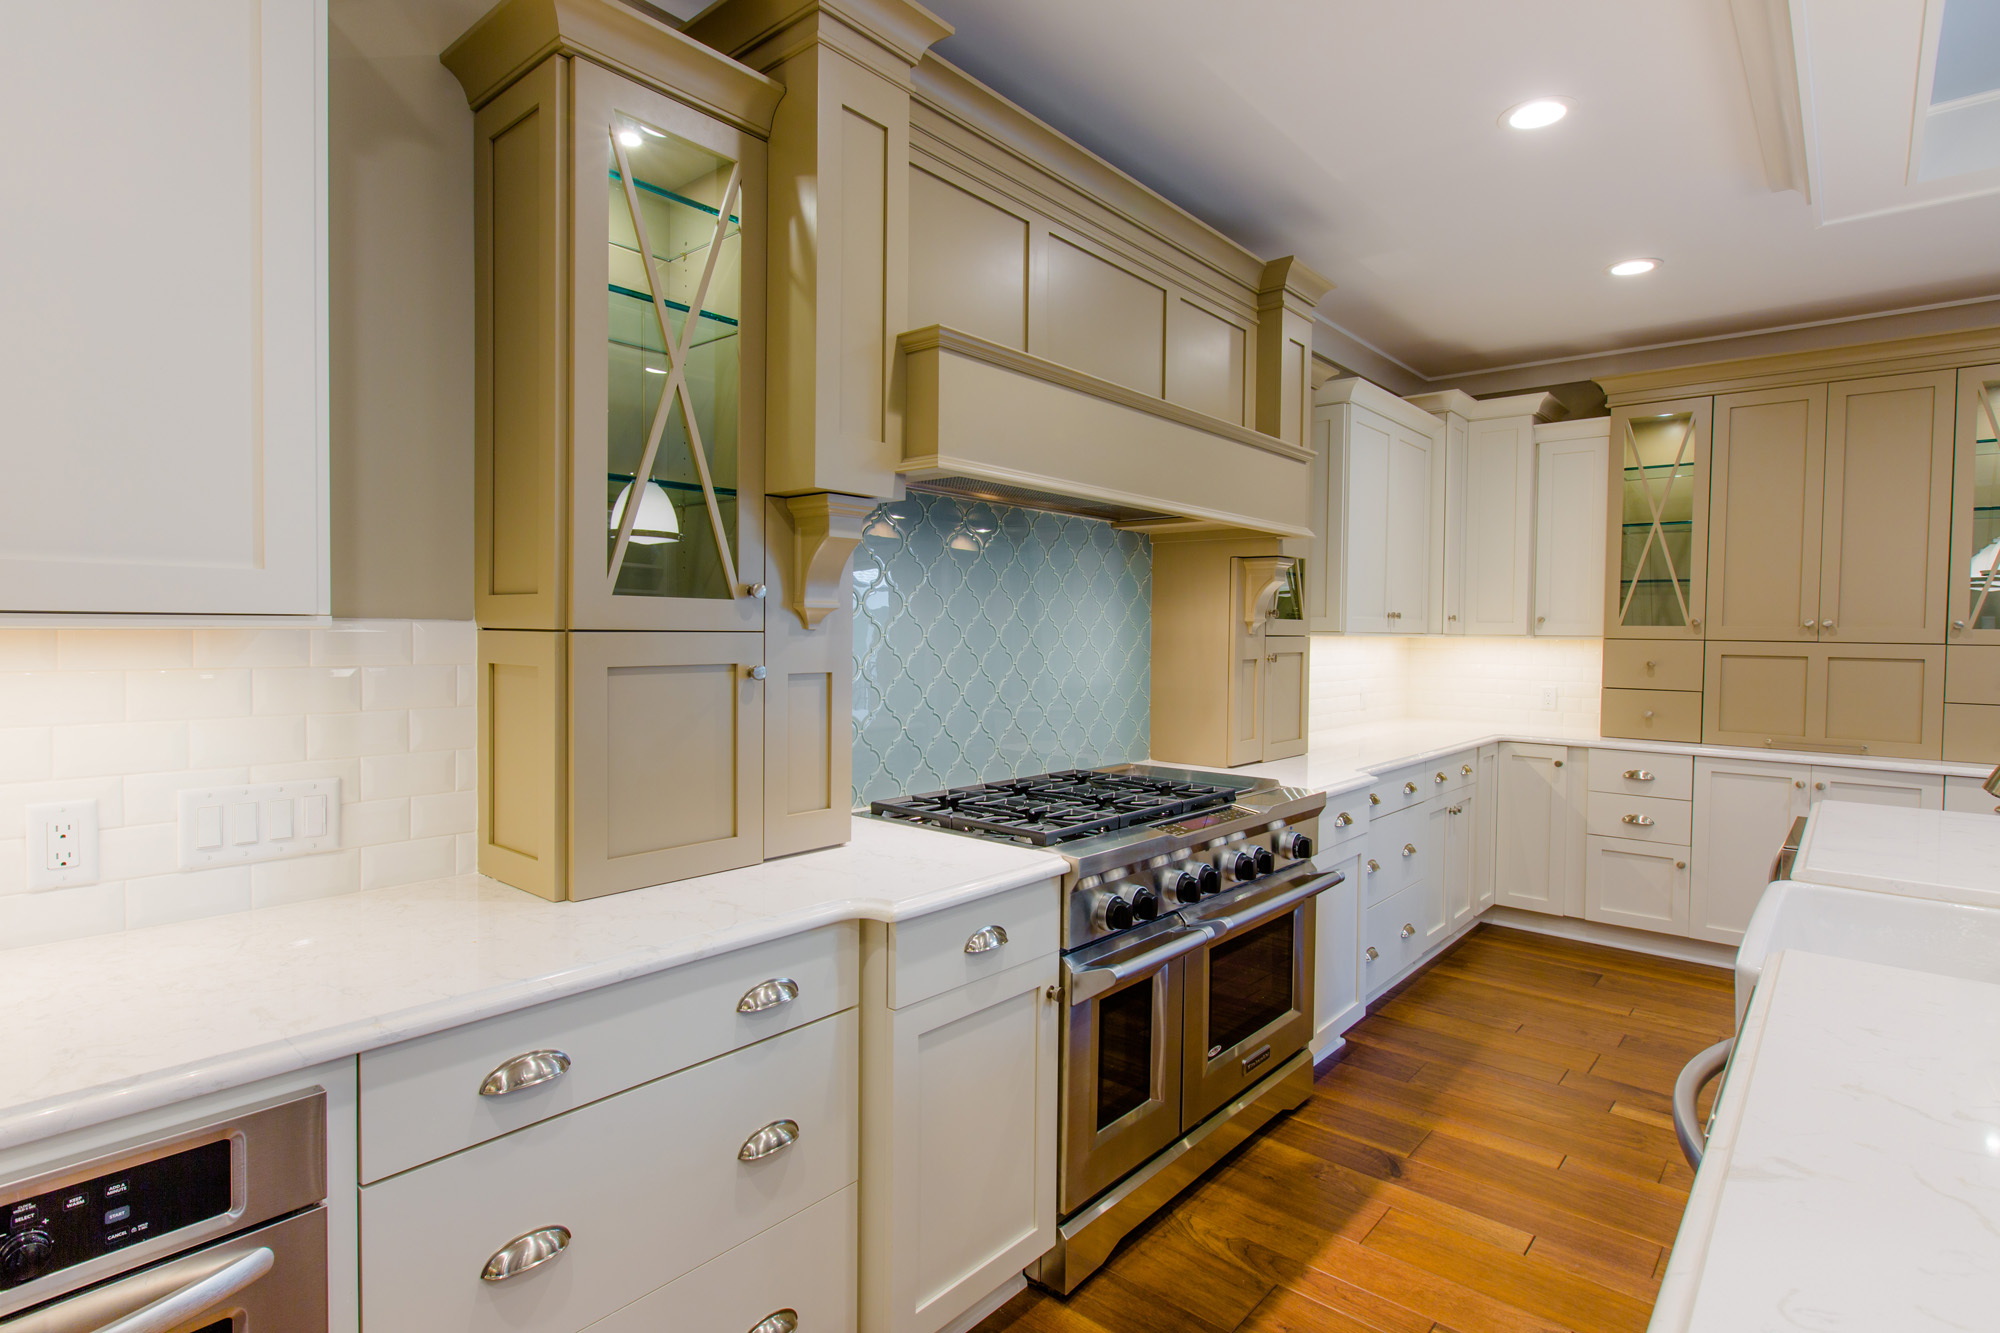 4 things to know when choosing kitchen cabinets | Reico ...